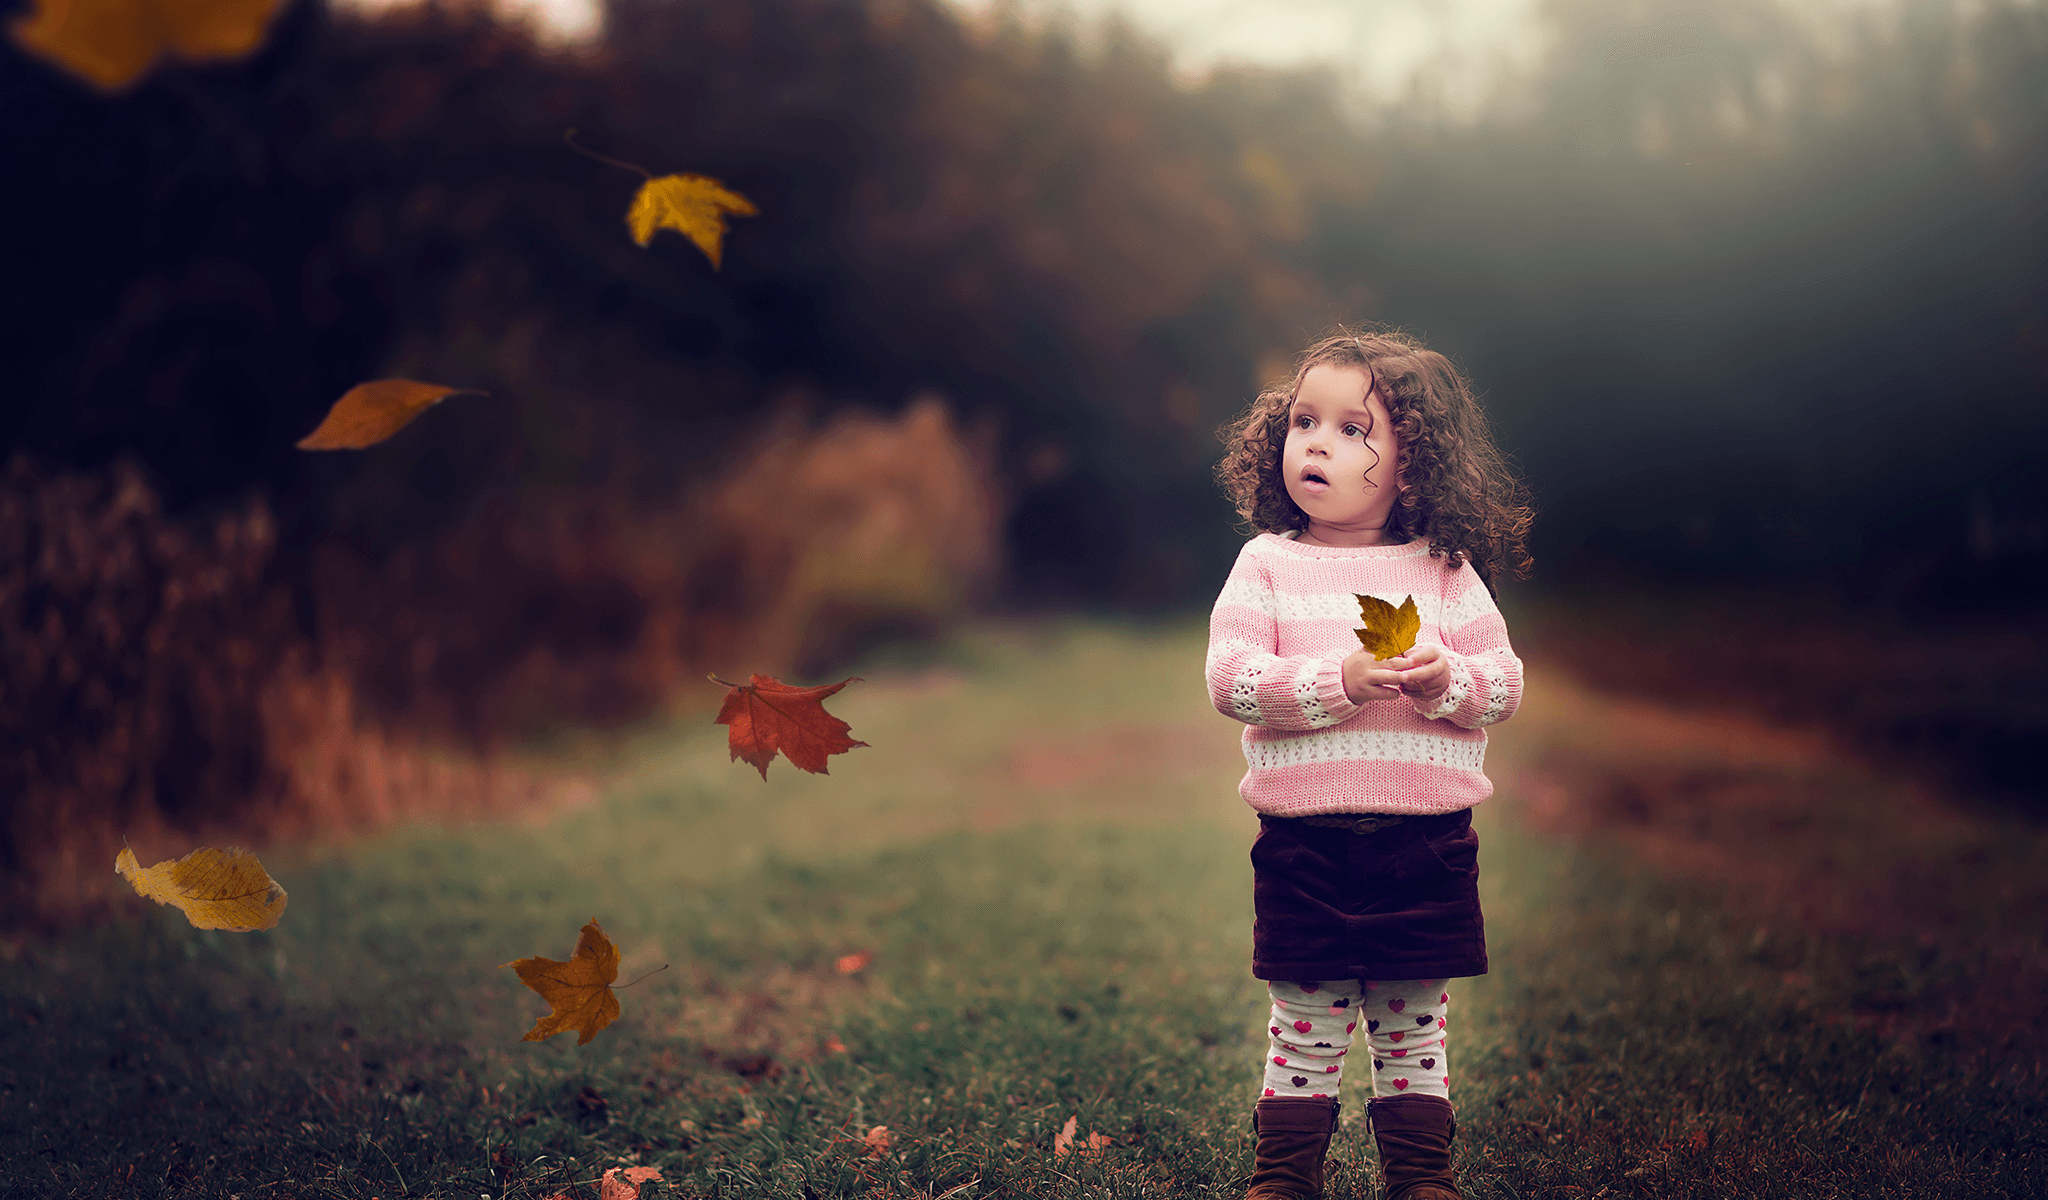 Falling Leaves Overlays & Actions Collection